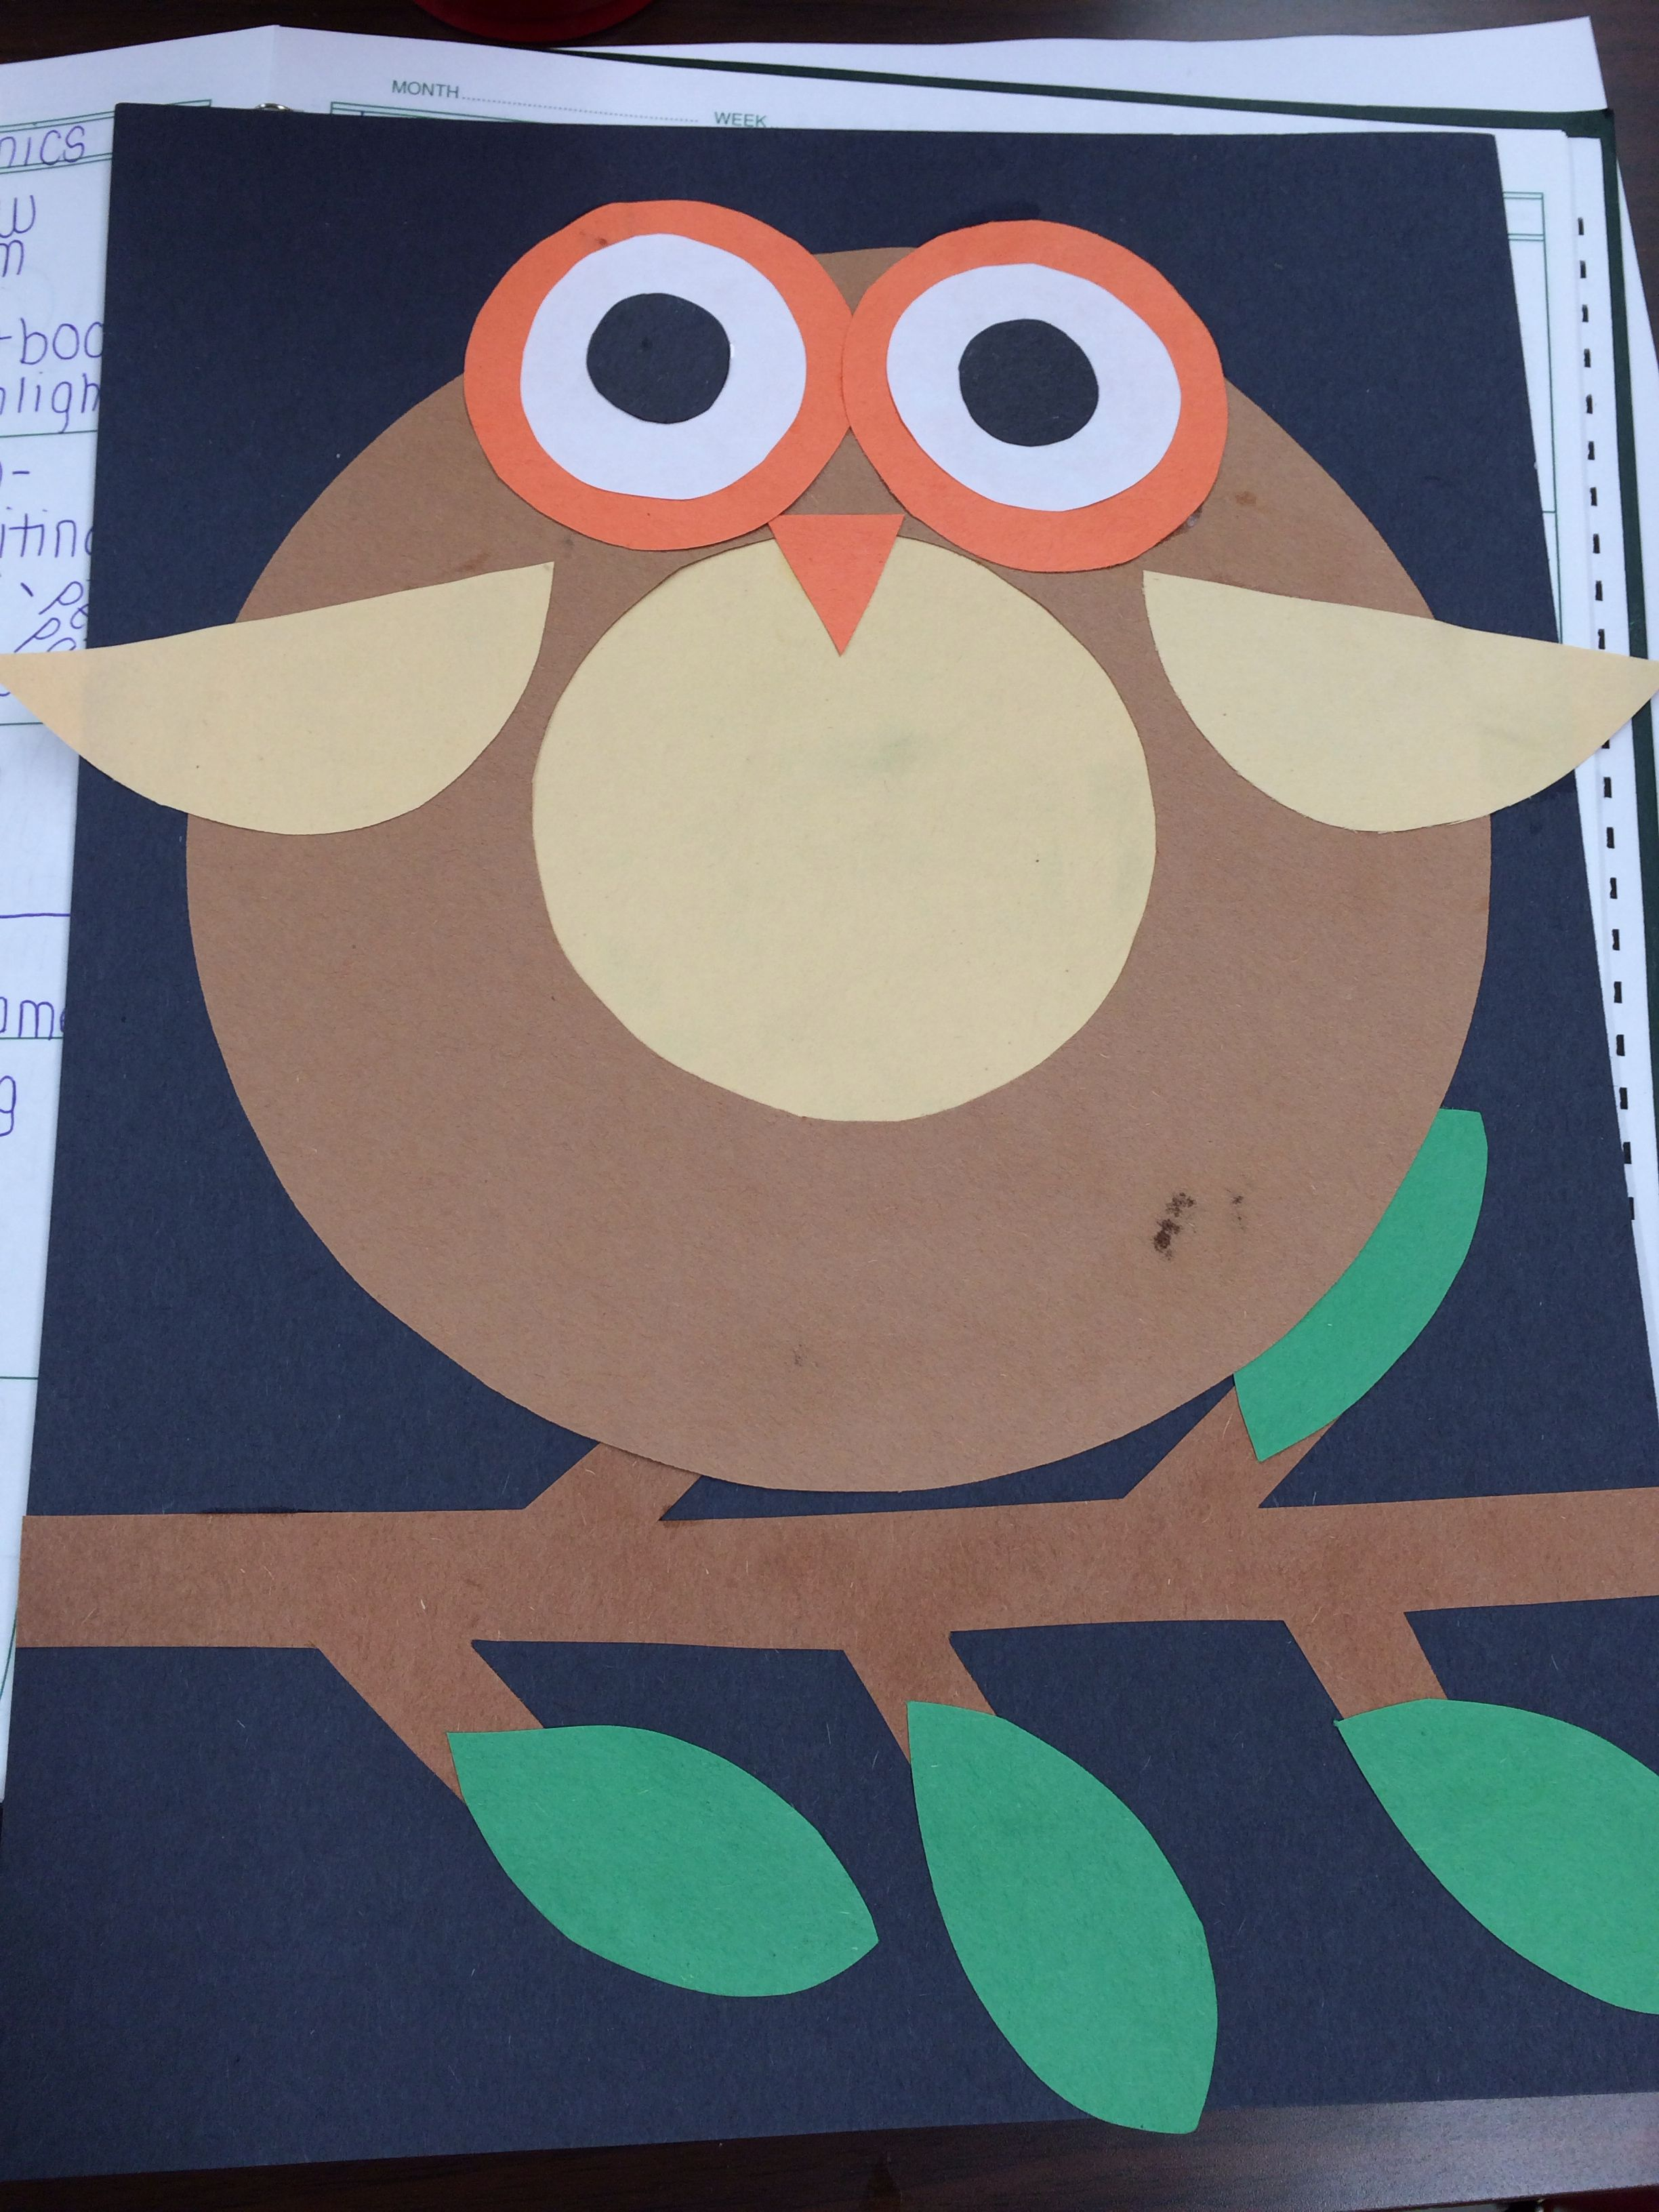 O Is For Owl If You Could Find An Owl That Was Shaped Kinda Like An O It Would Be Adorable